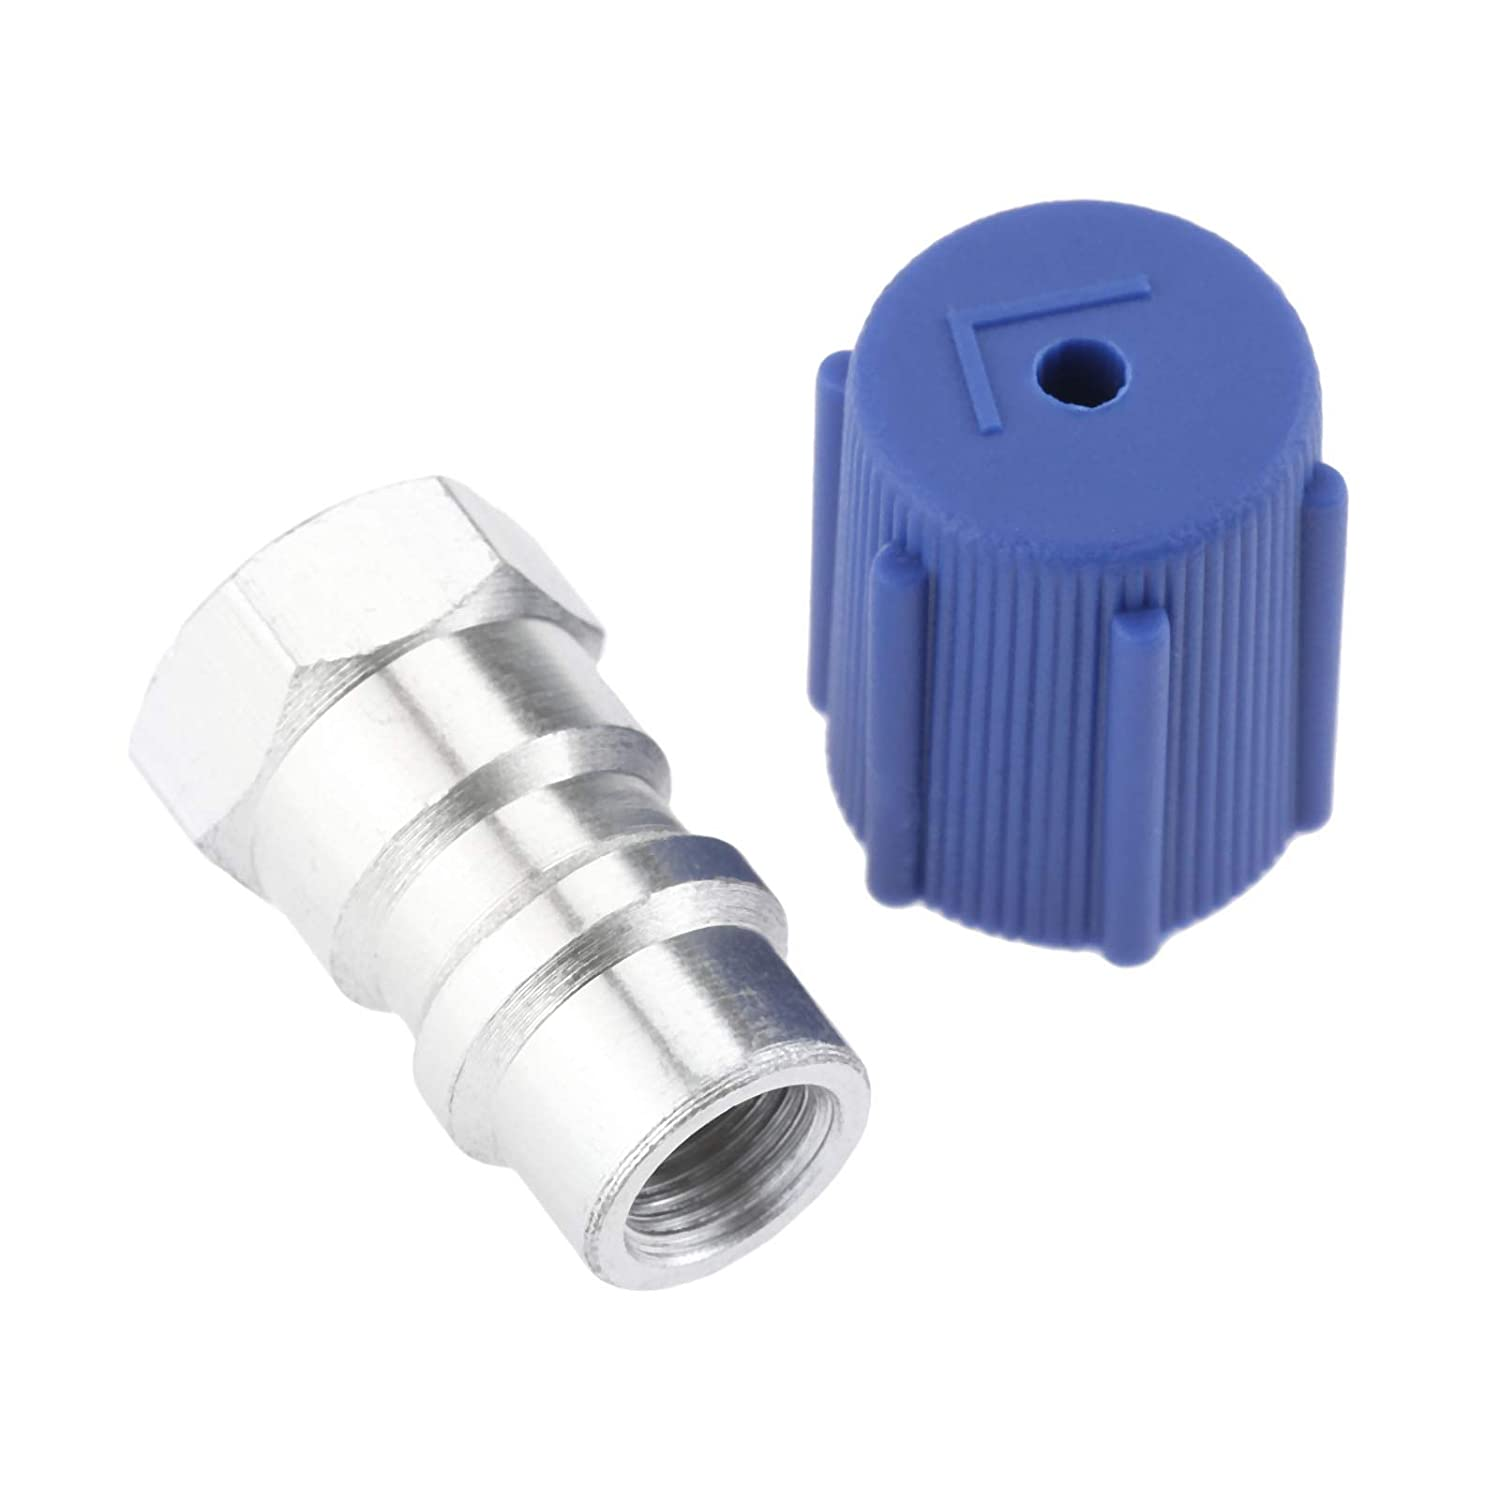 R12//R22 to R-134a Retrofit Valve 7//16/'/' Low Side Port Adapter Aluminum Alloy Air Conditioning Systems AC Cap Universal